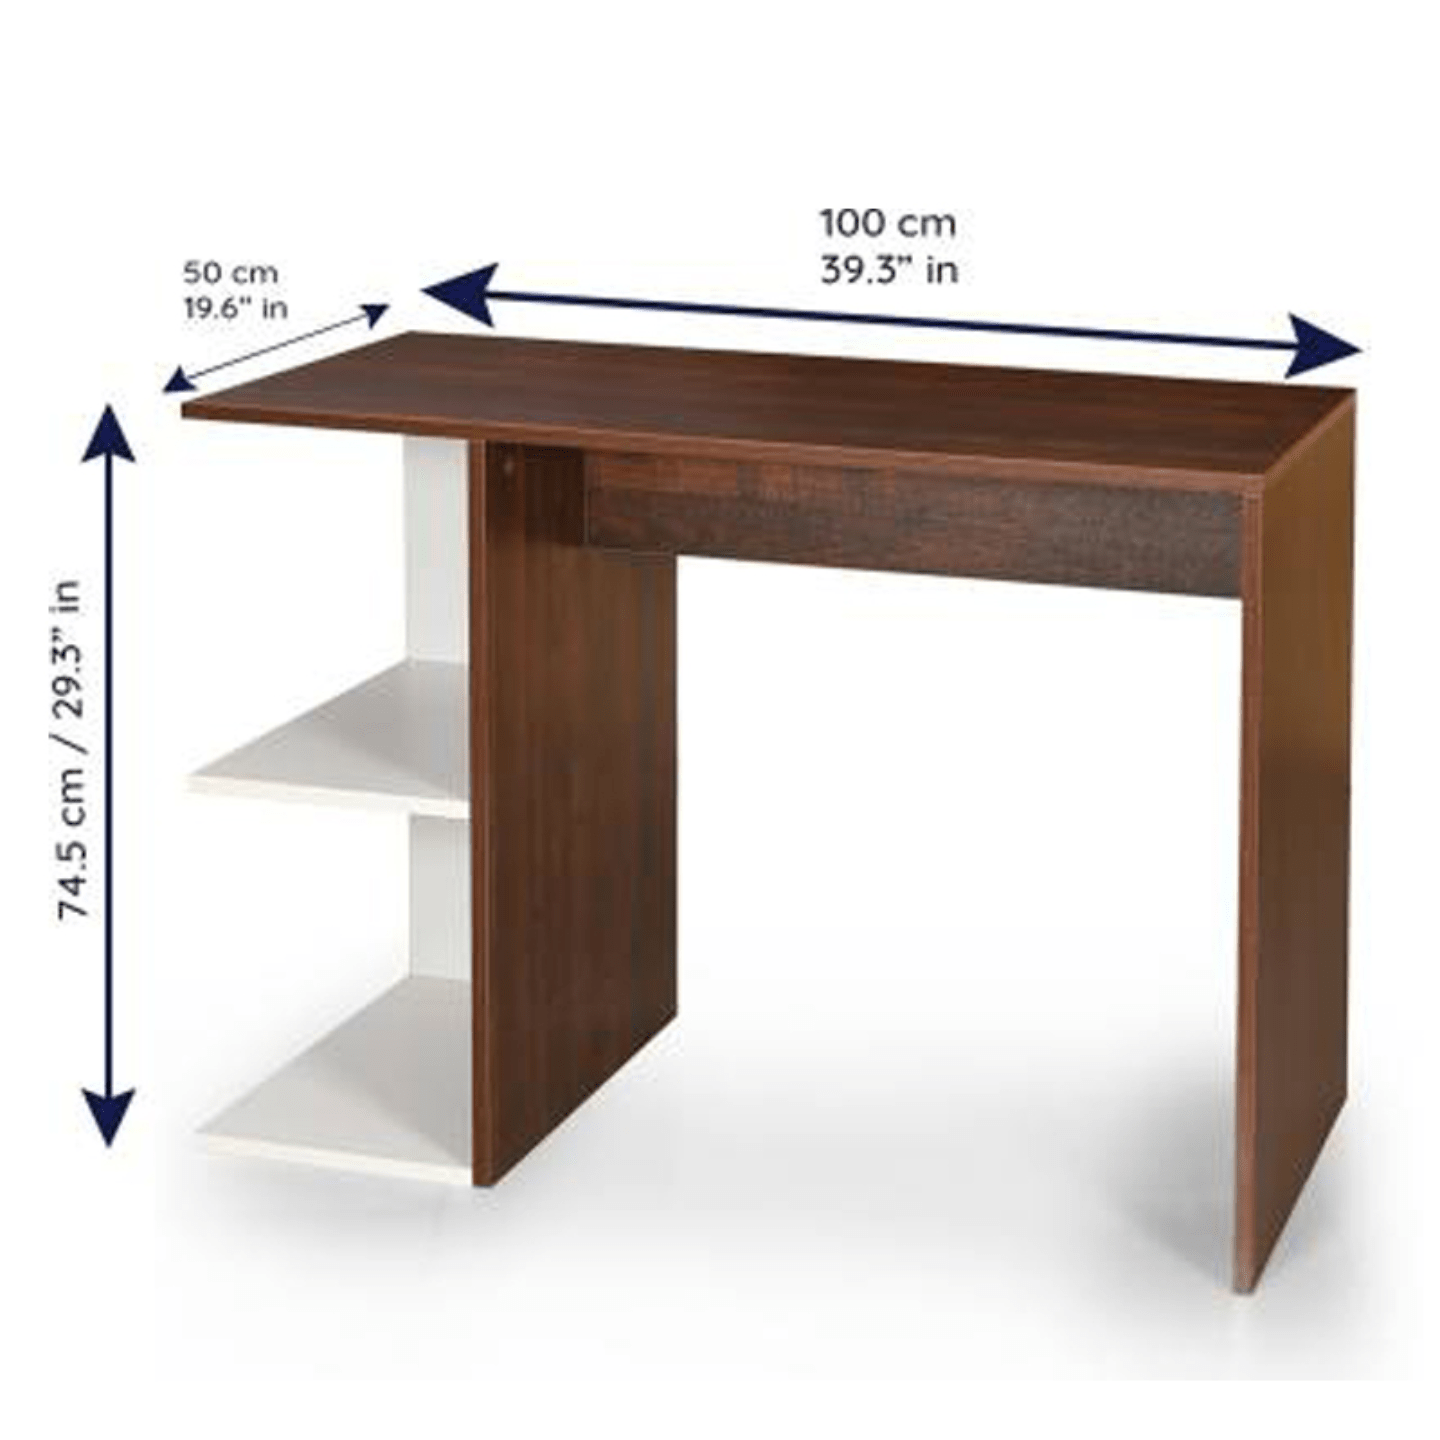 Student Study Table - Nile